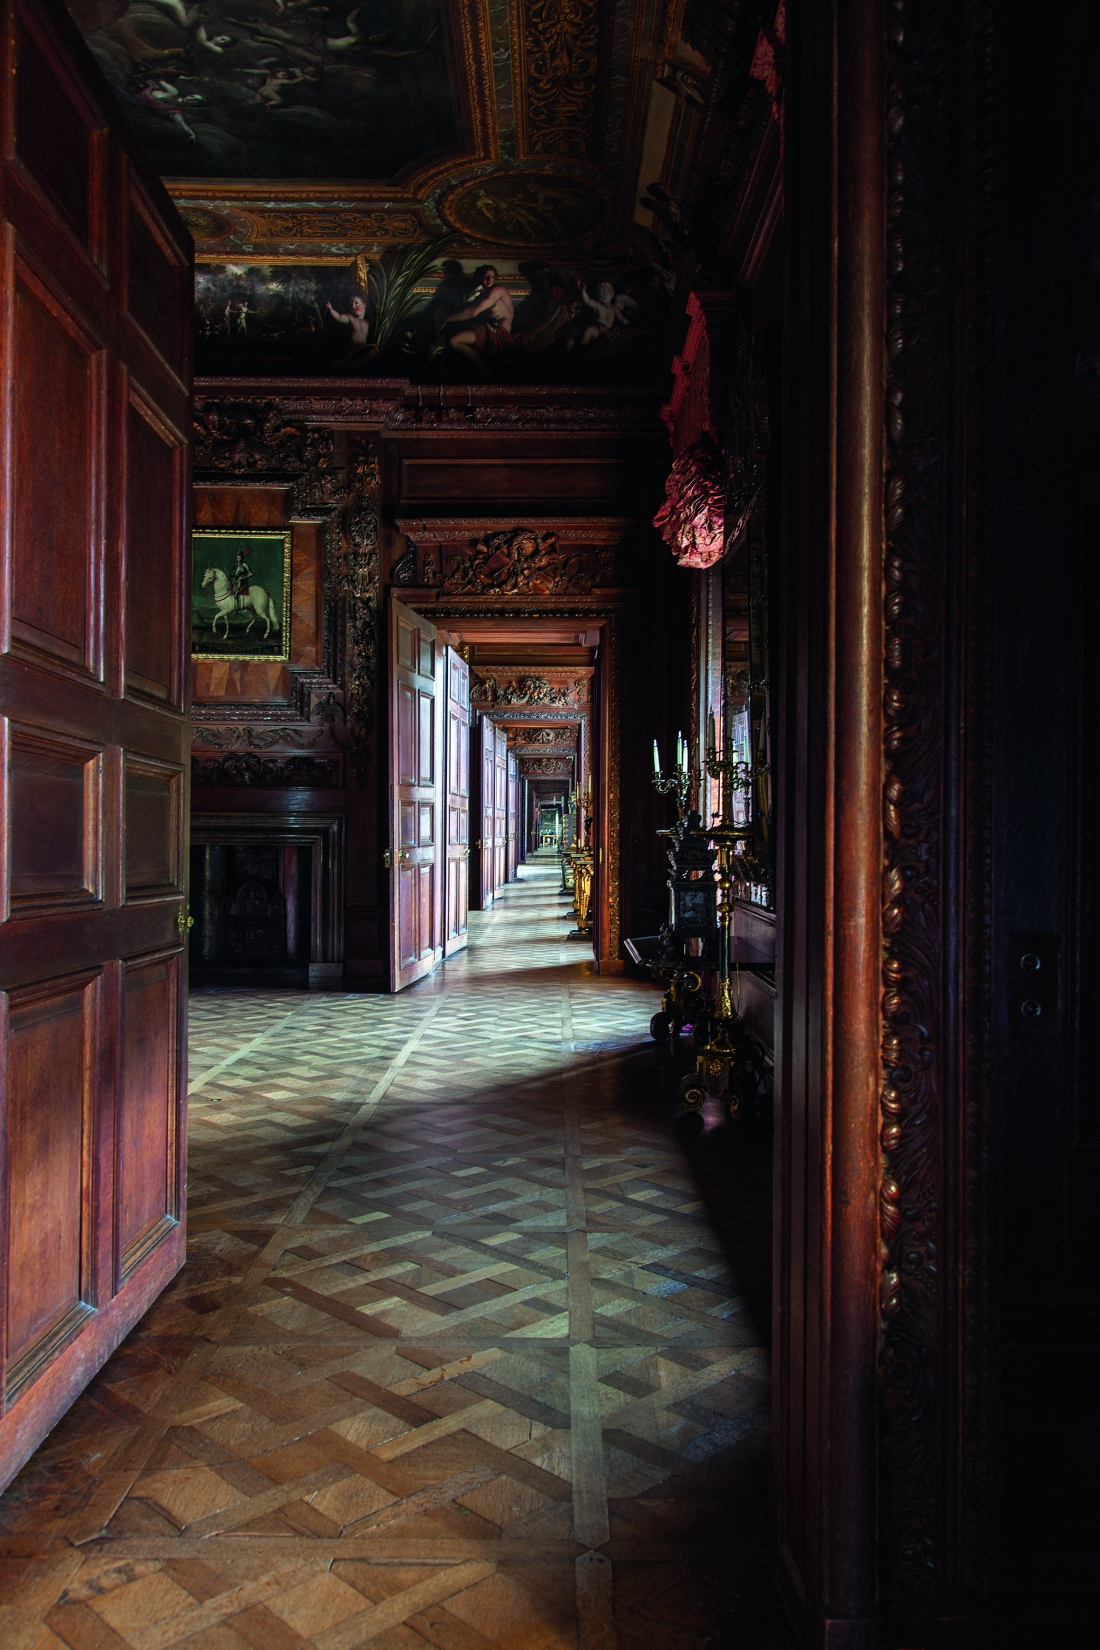 Chatsworth House. State Apartment enfilade along the South Front, the length of which appears doubled by a panel of mirror glass at its end. Courtesy © Derry Moore | Prestel